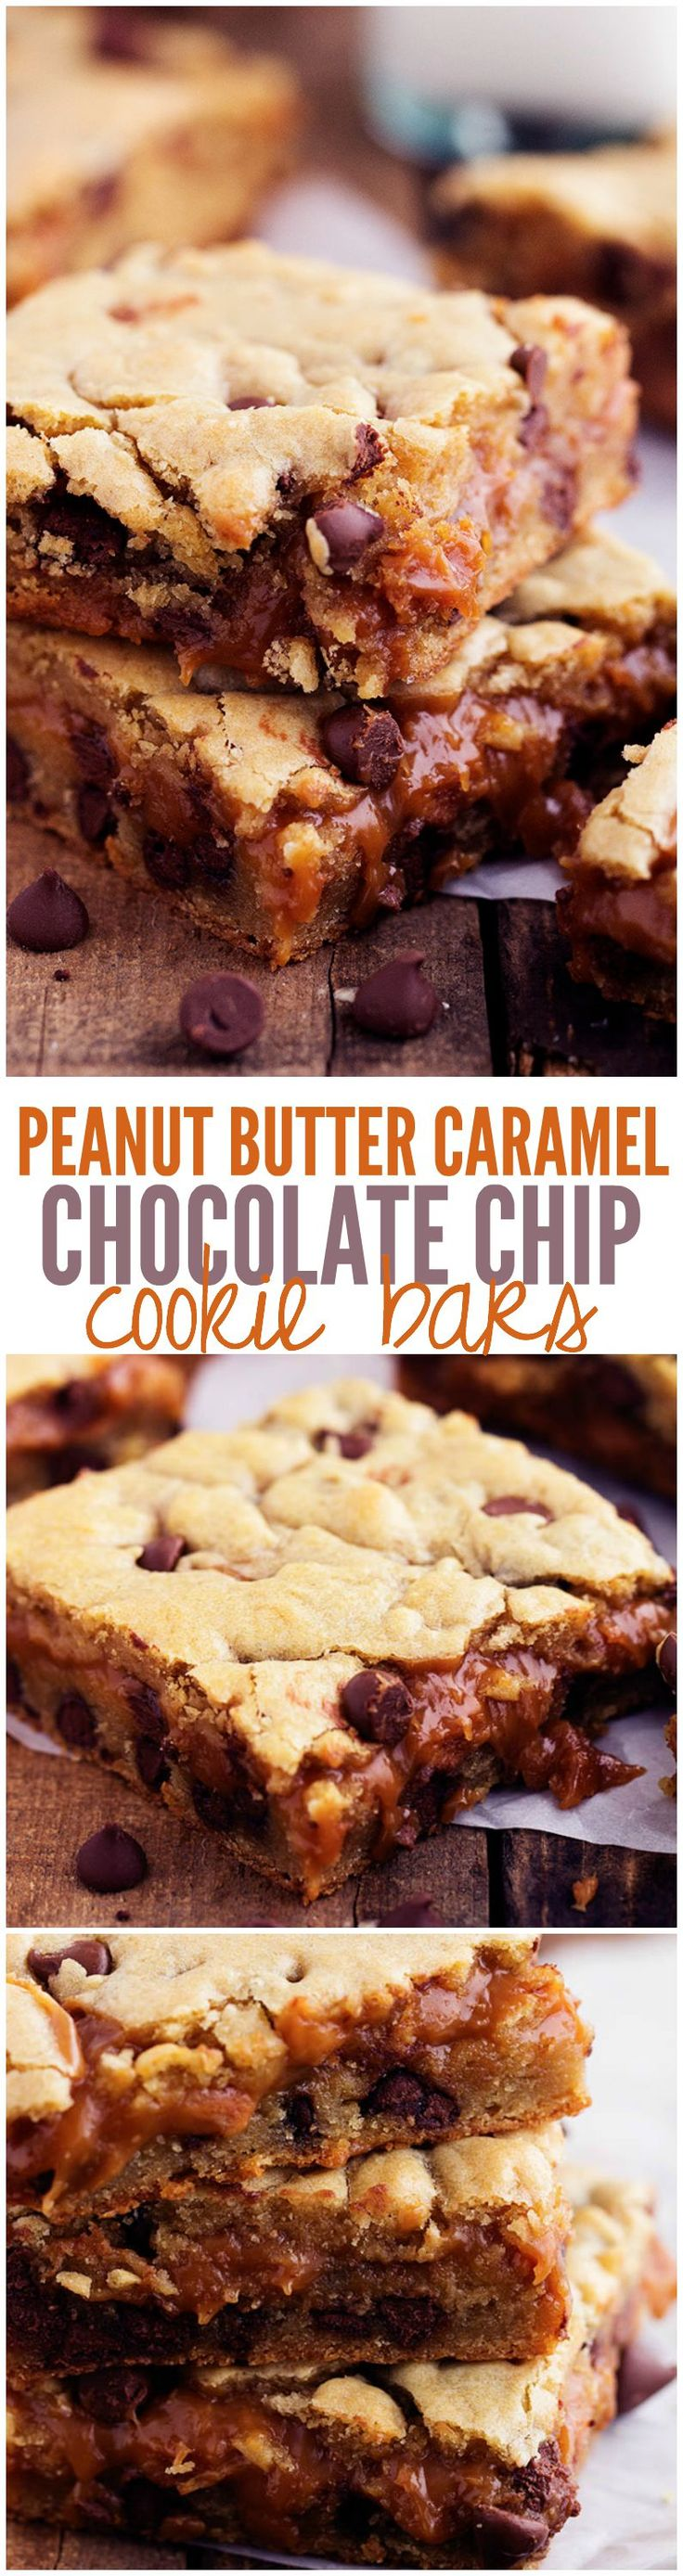 These Chocolate Chip cookie bars have a peanut butter caramel center! One of the best treats that you will make!